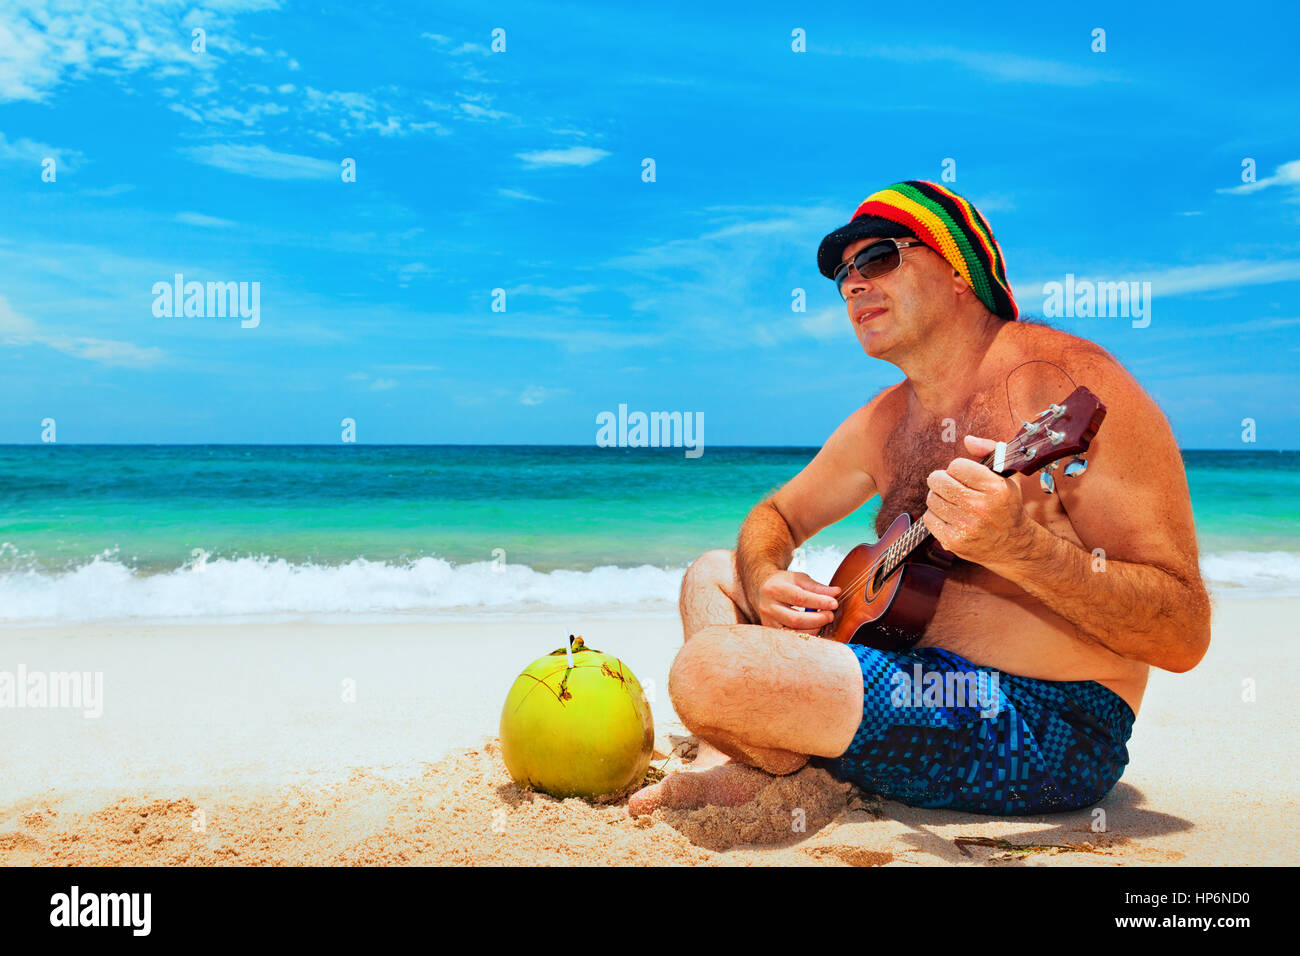 Happy retiree age man in funny hat has fun, play reggae music on Hawaiian guitar, enjoy caribbean beach party. Seniors - Stock Image